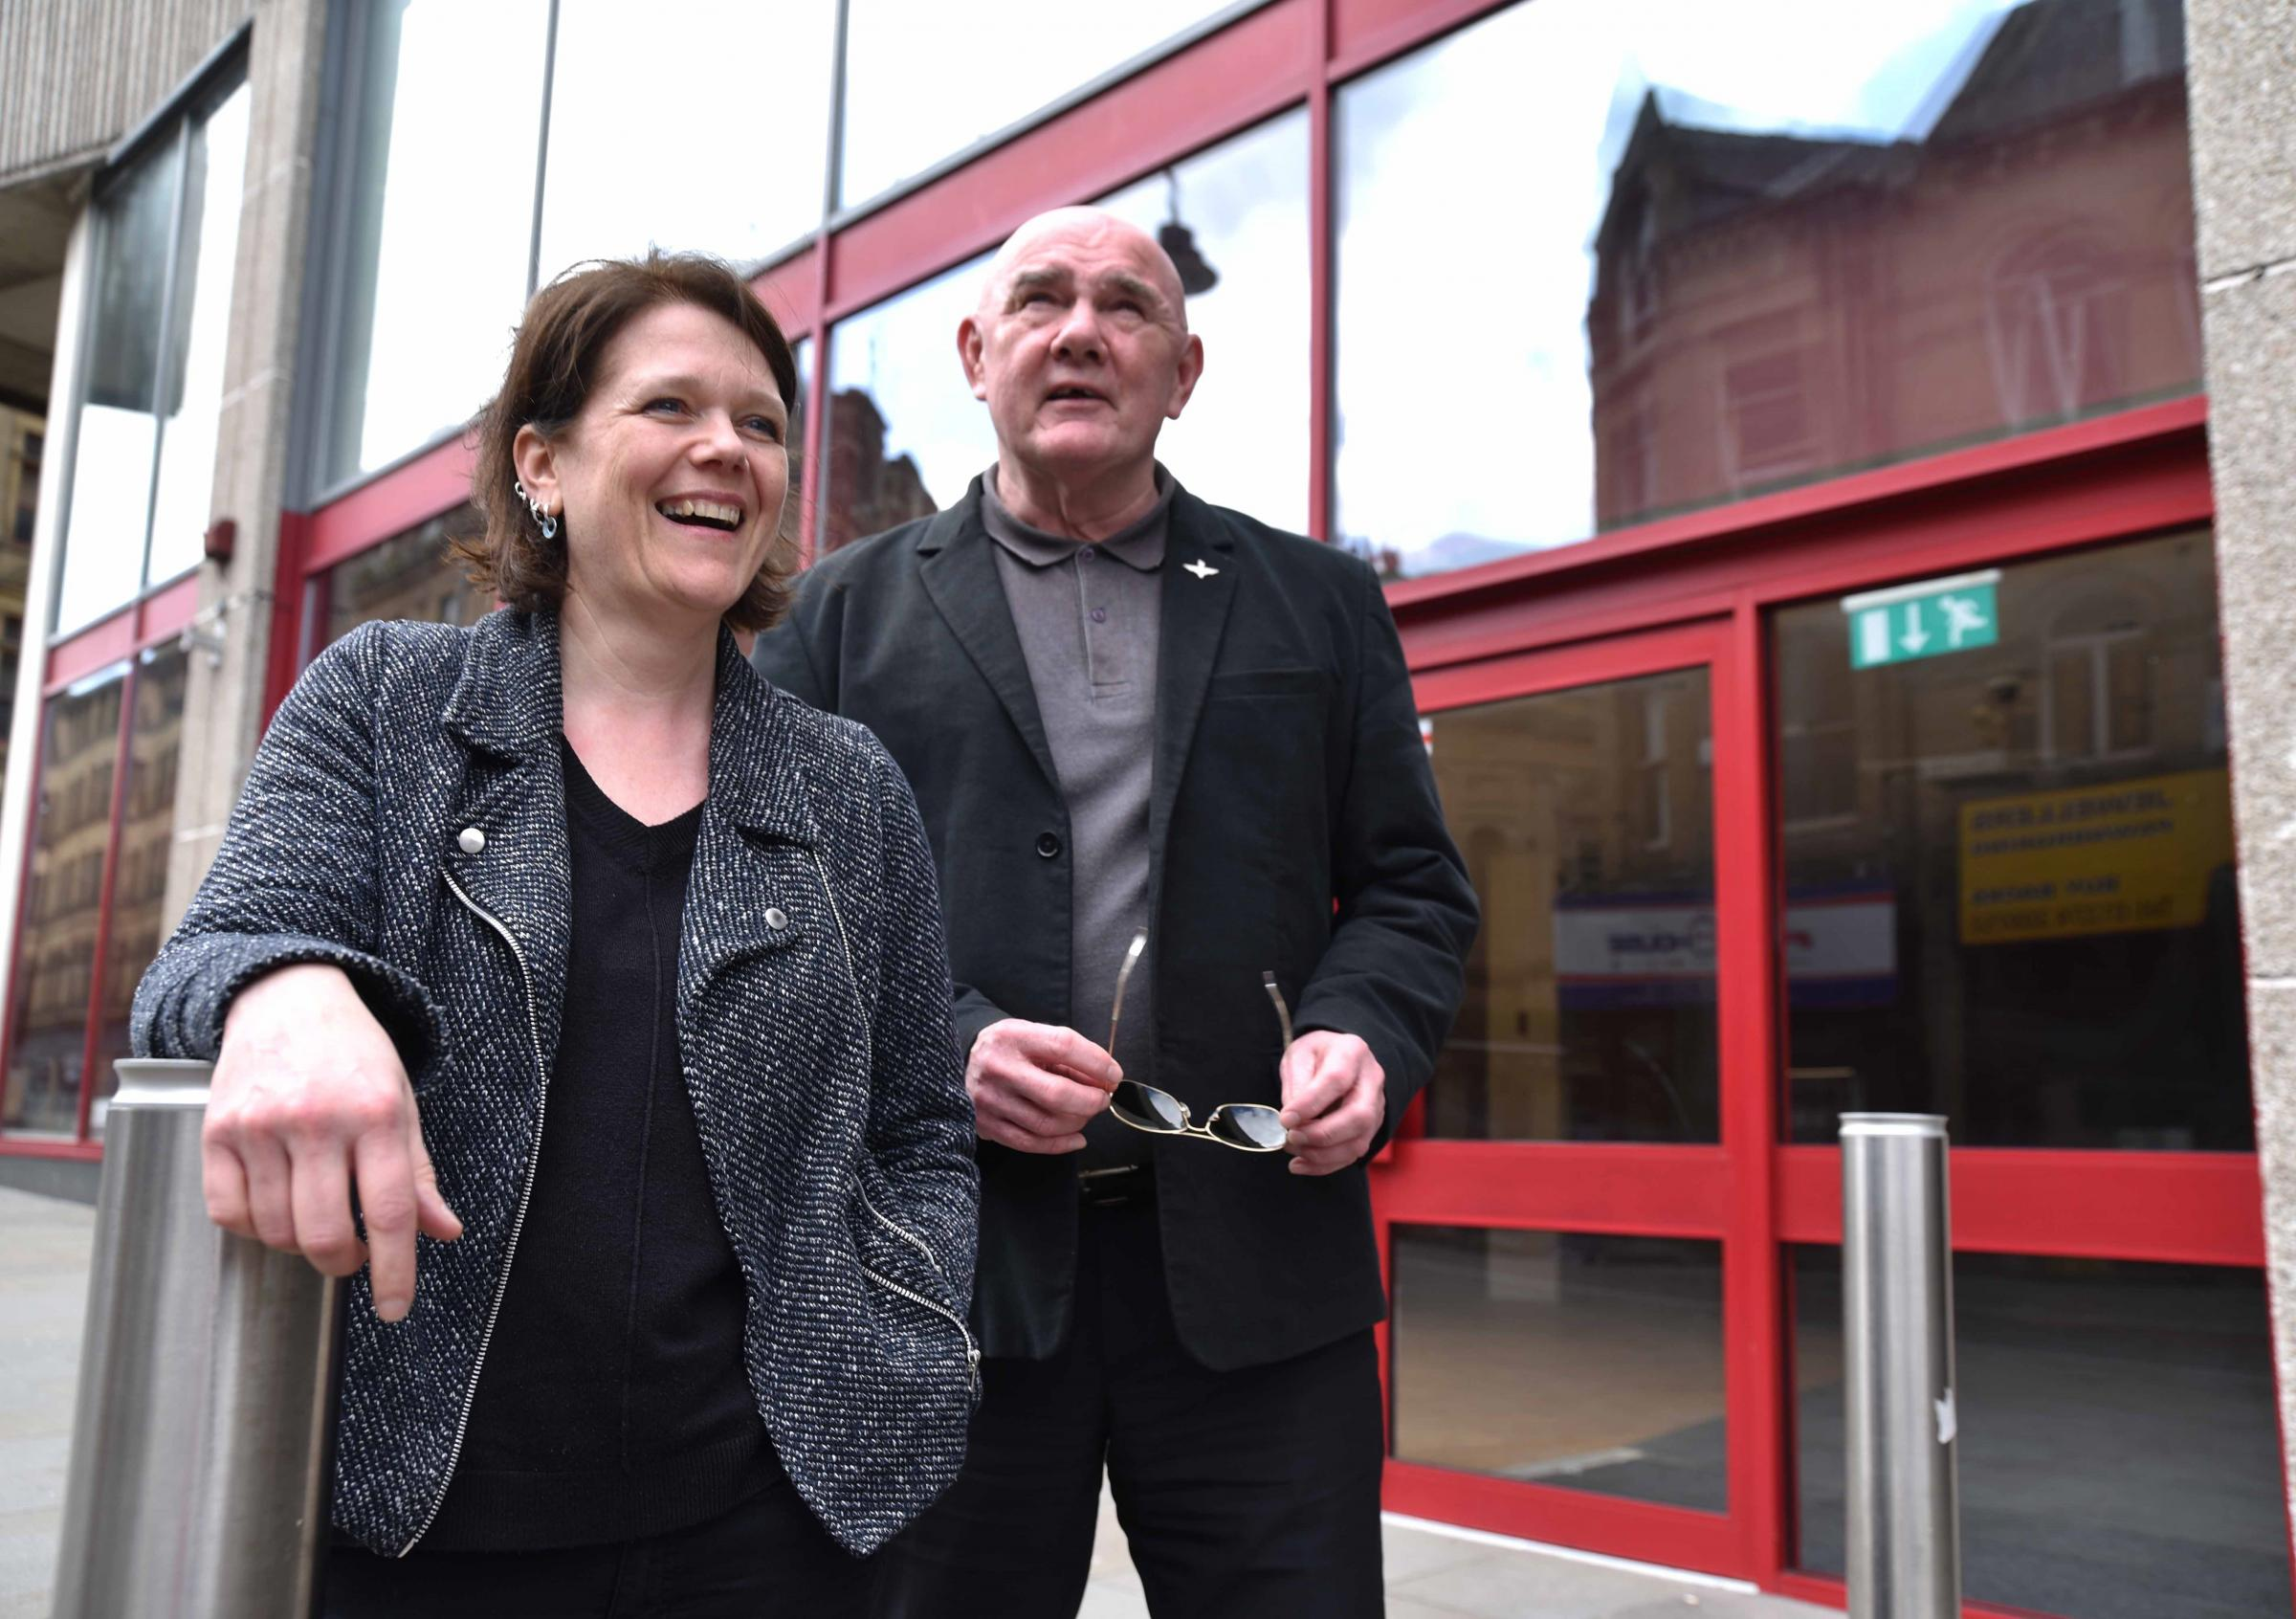 Cath Brooke and Arthur Stafford outside the former costa coffee store in Bradford.